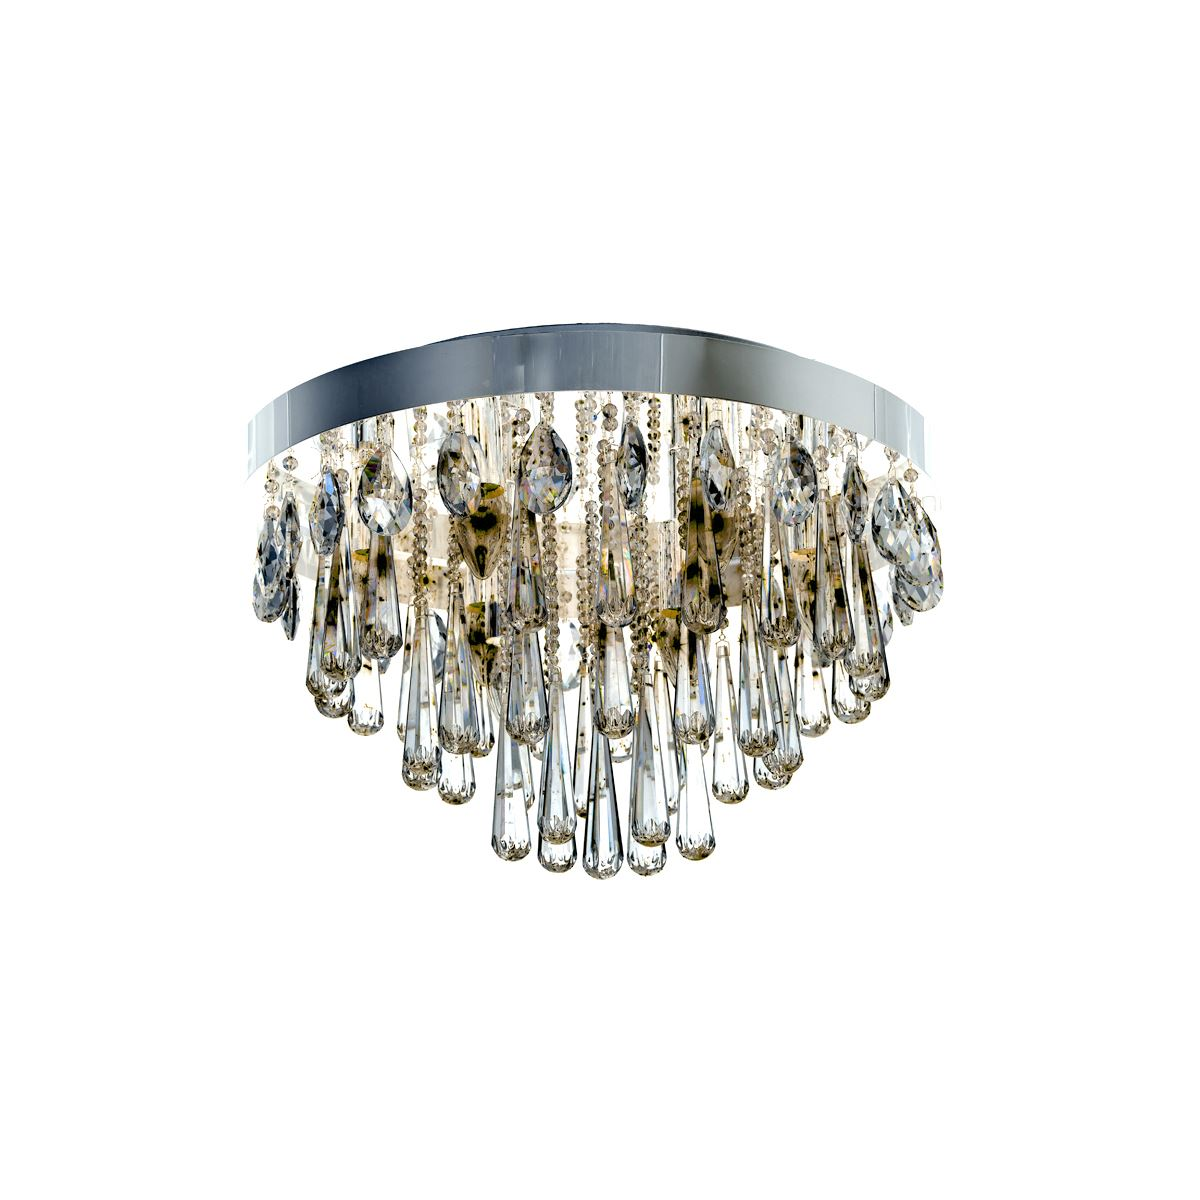 Diyas IL31433 Sophia Ceiling 10 Light E14 Polished Chrome/Crystal